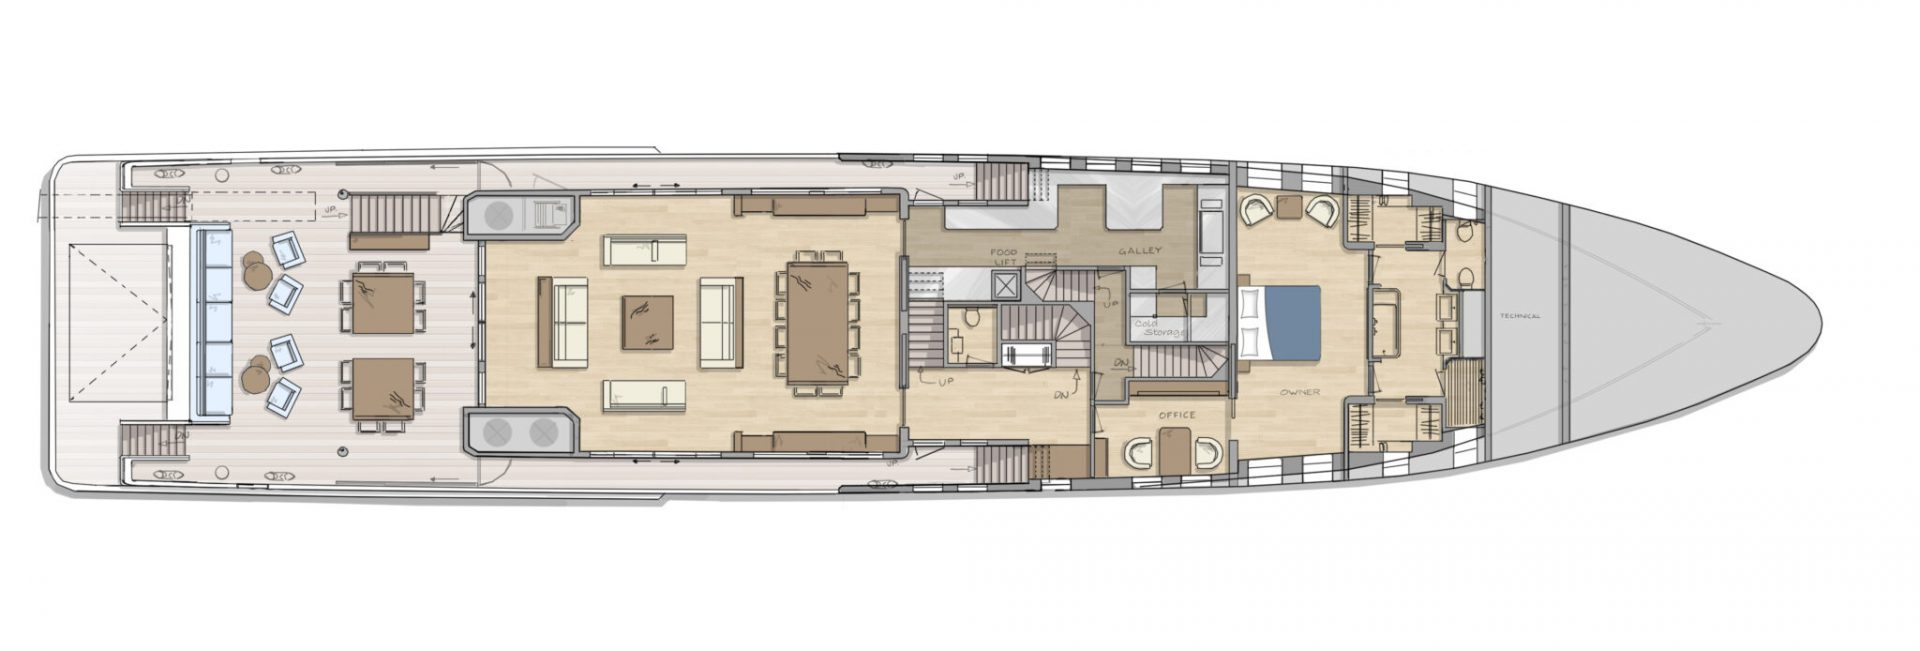 DIANA R.50 - maindeck - superyacht concept design by Diana Yacht Design